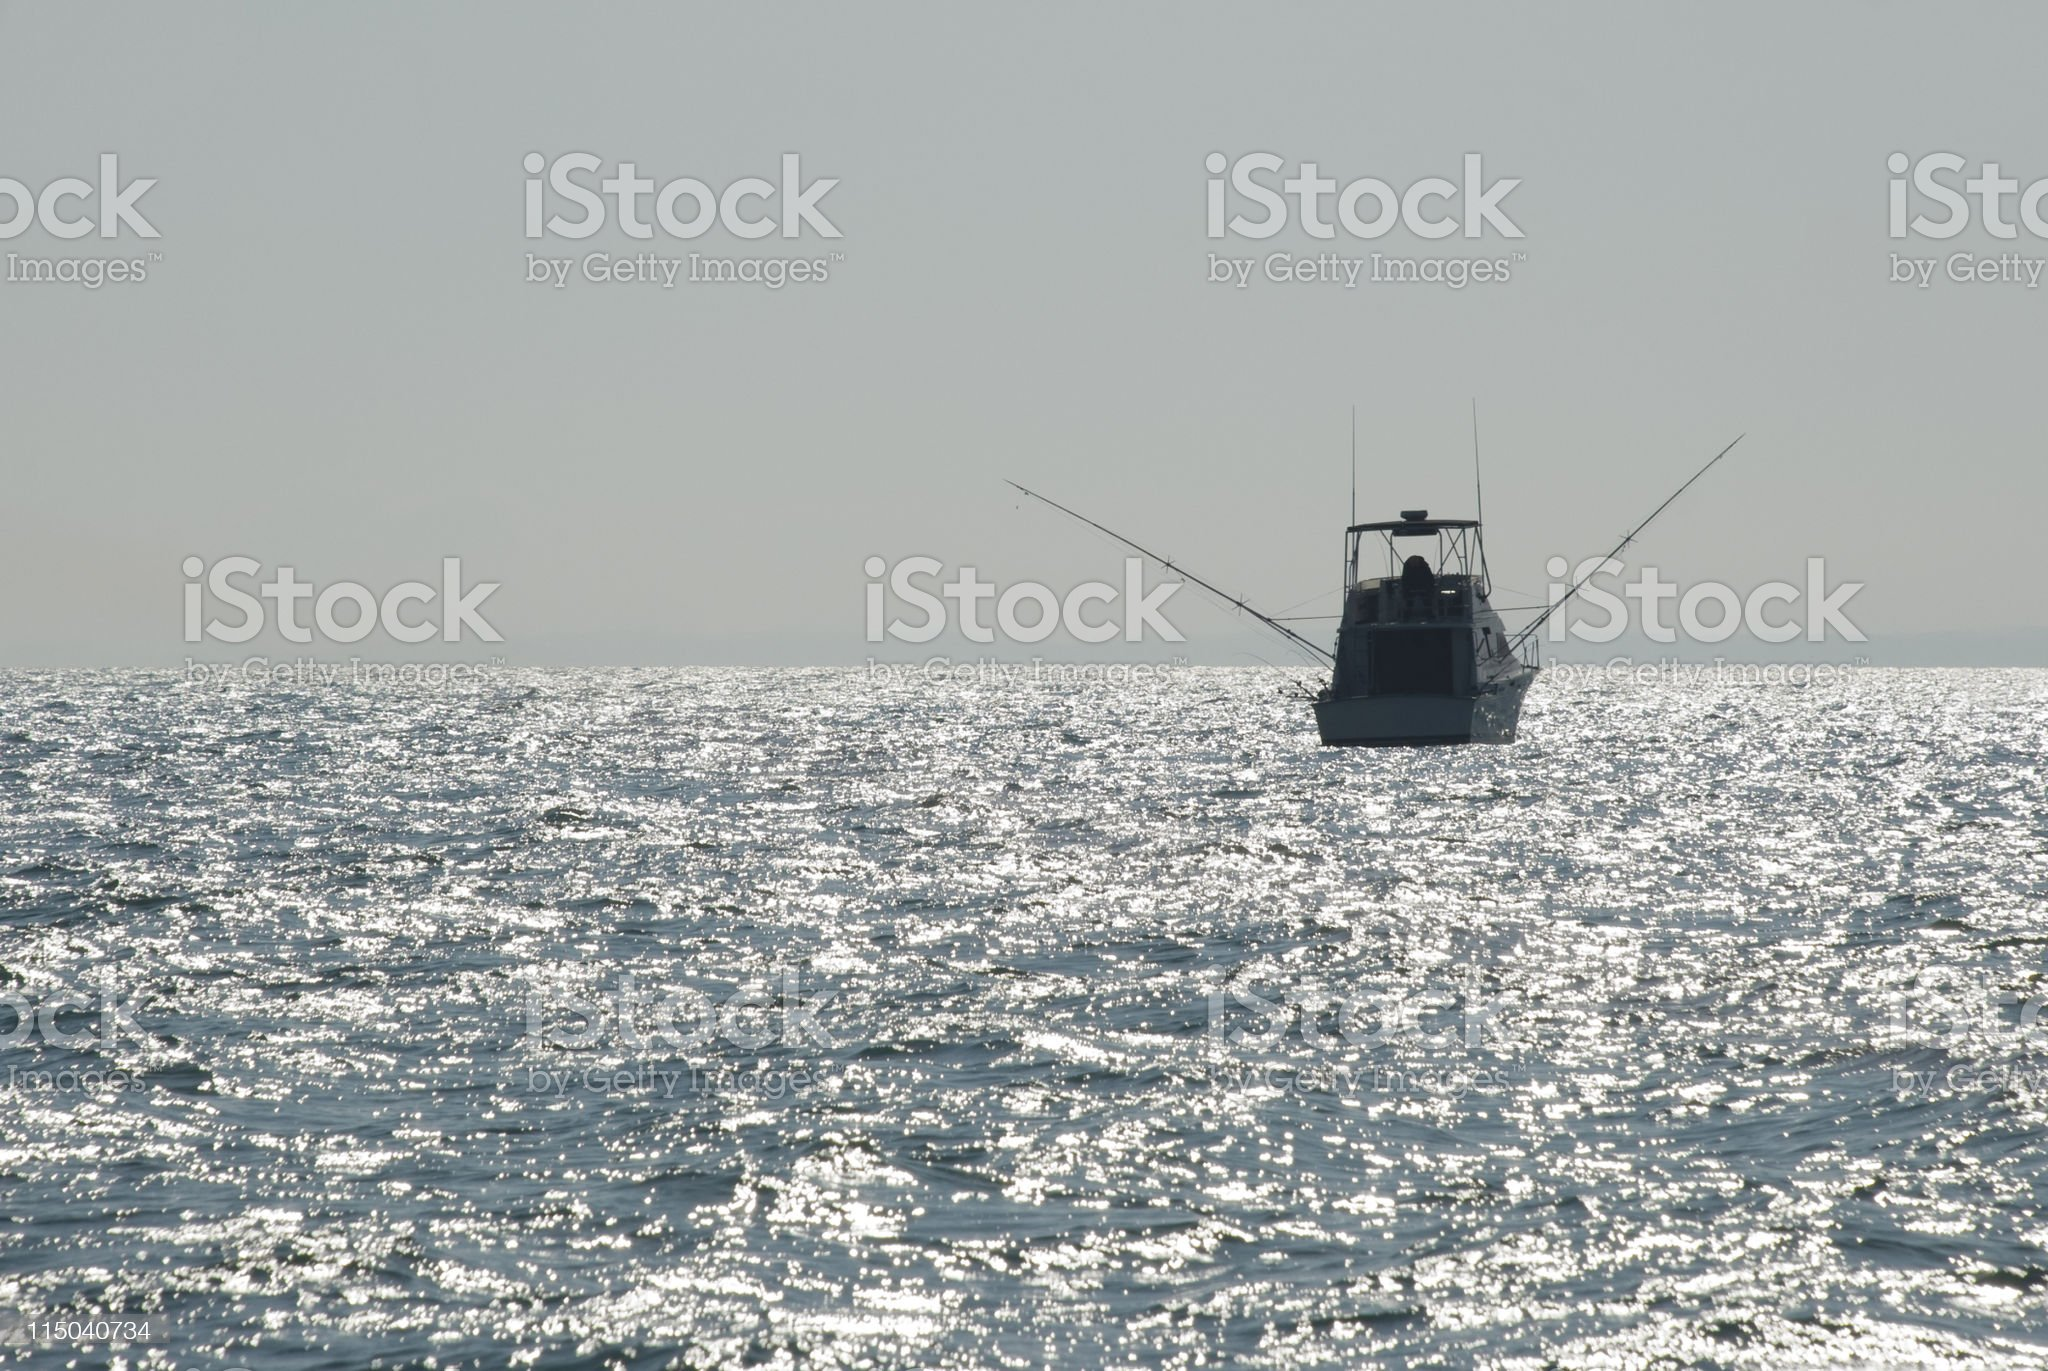 Charter Fishing Boat on a Lake with an Overcast Sky royalty-free stock photo